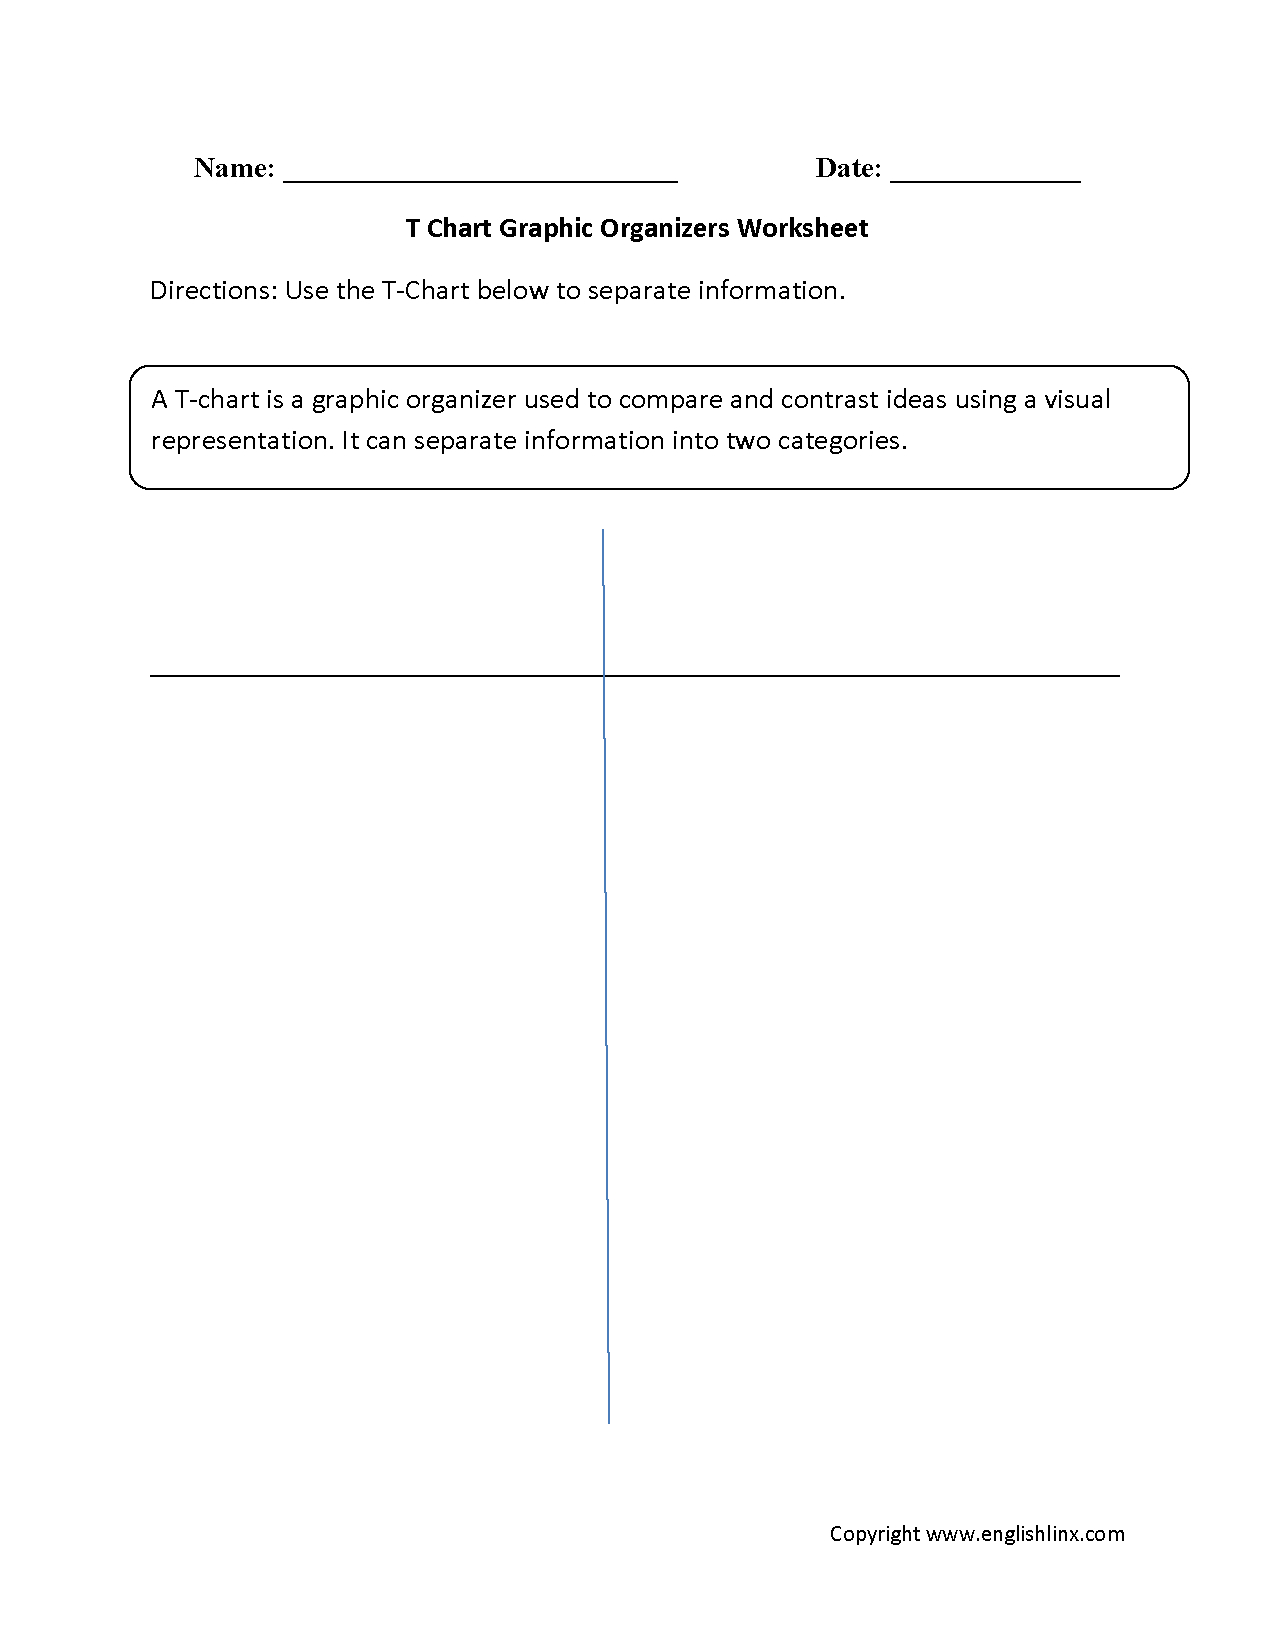 Englishlinx | Graphic Organizers Worksheets - Free Printable Main Idea Graphic Organizer